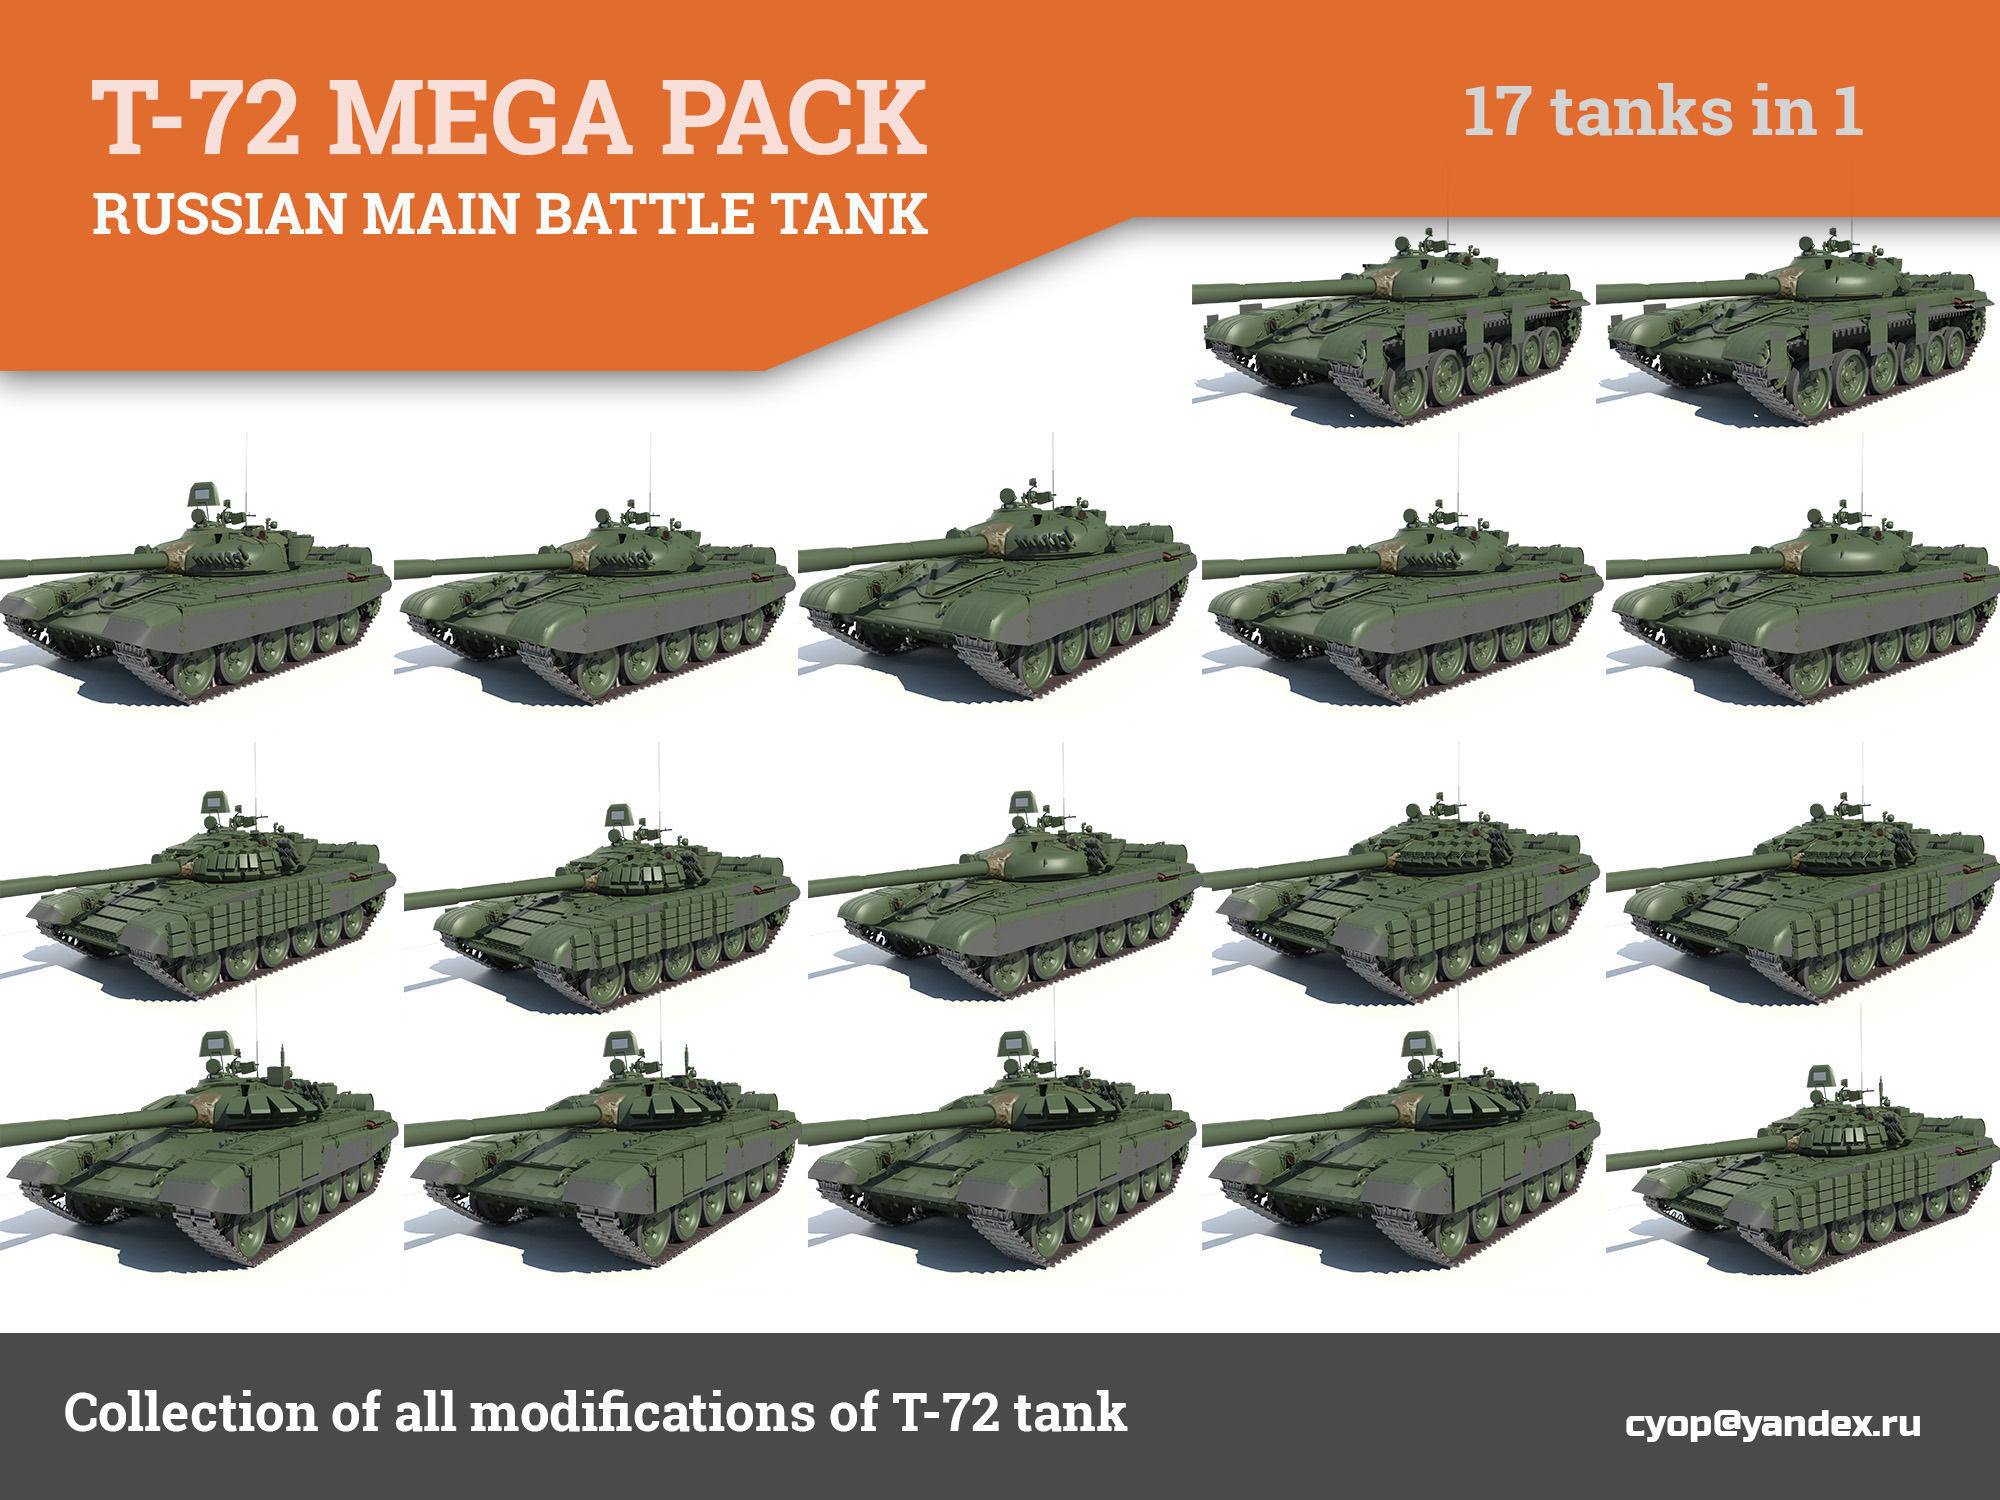 T-72 MEGA PACK all modifications of this tank 17 in1